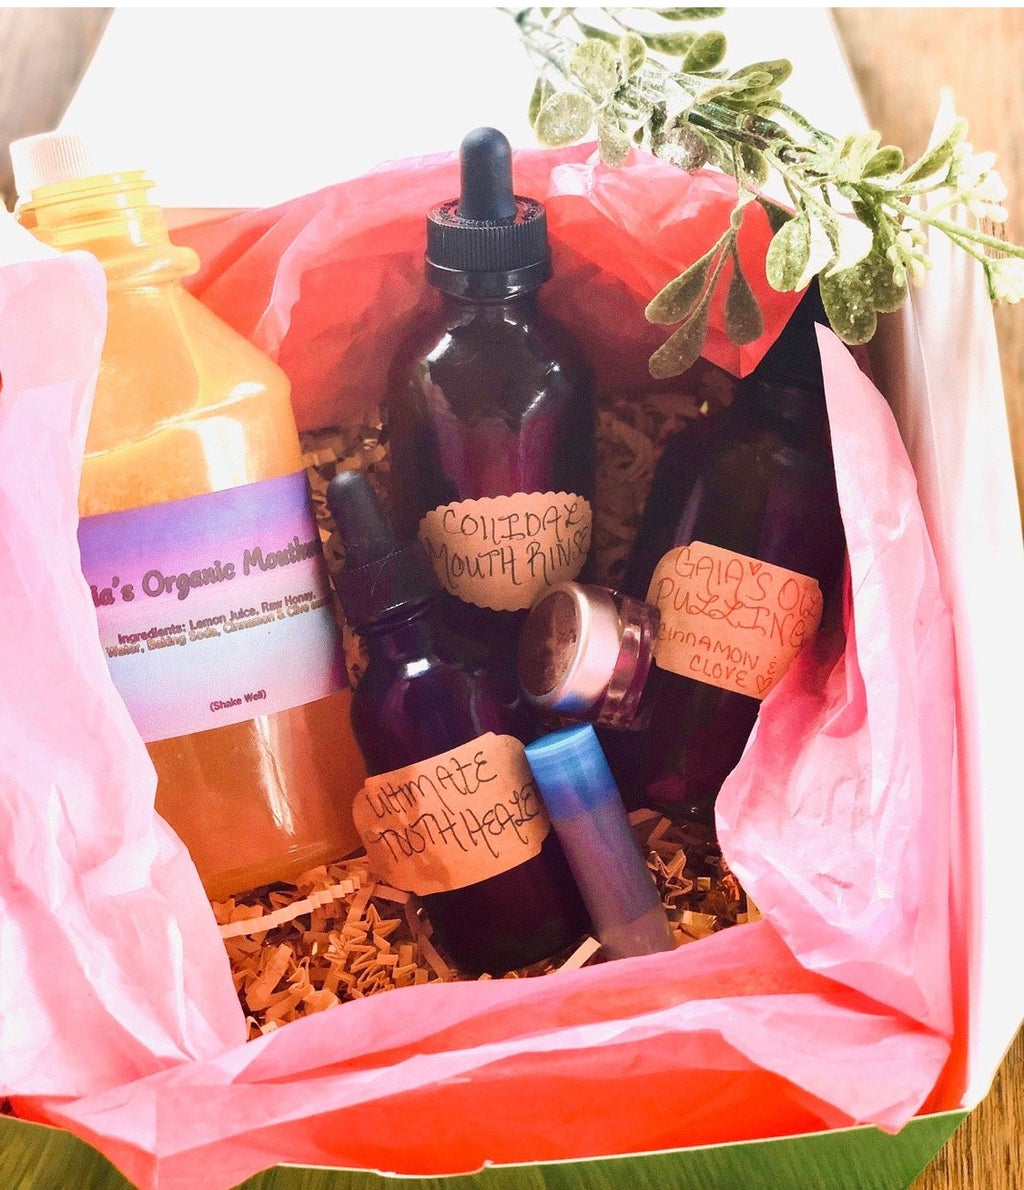 Gaia's Mouth Healing Kit - Gaia's Whole Healing Essentials